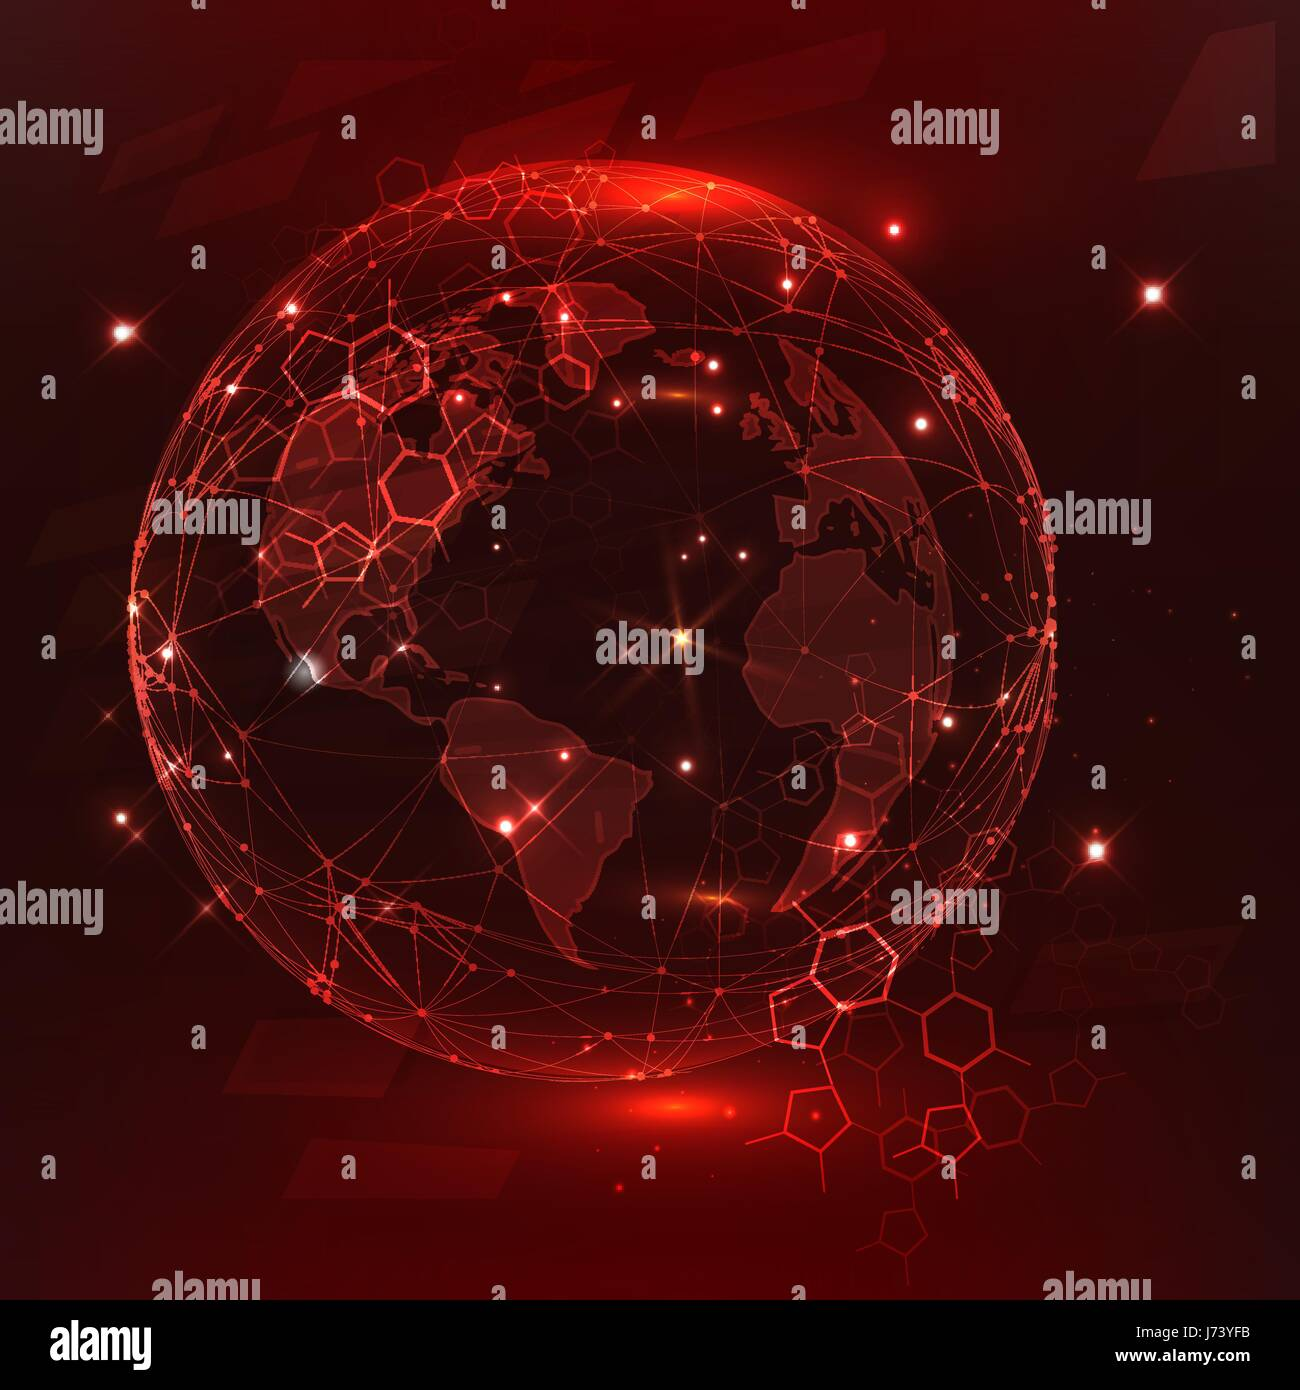 Global network connection, abstraction illustration - Stock Vector